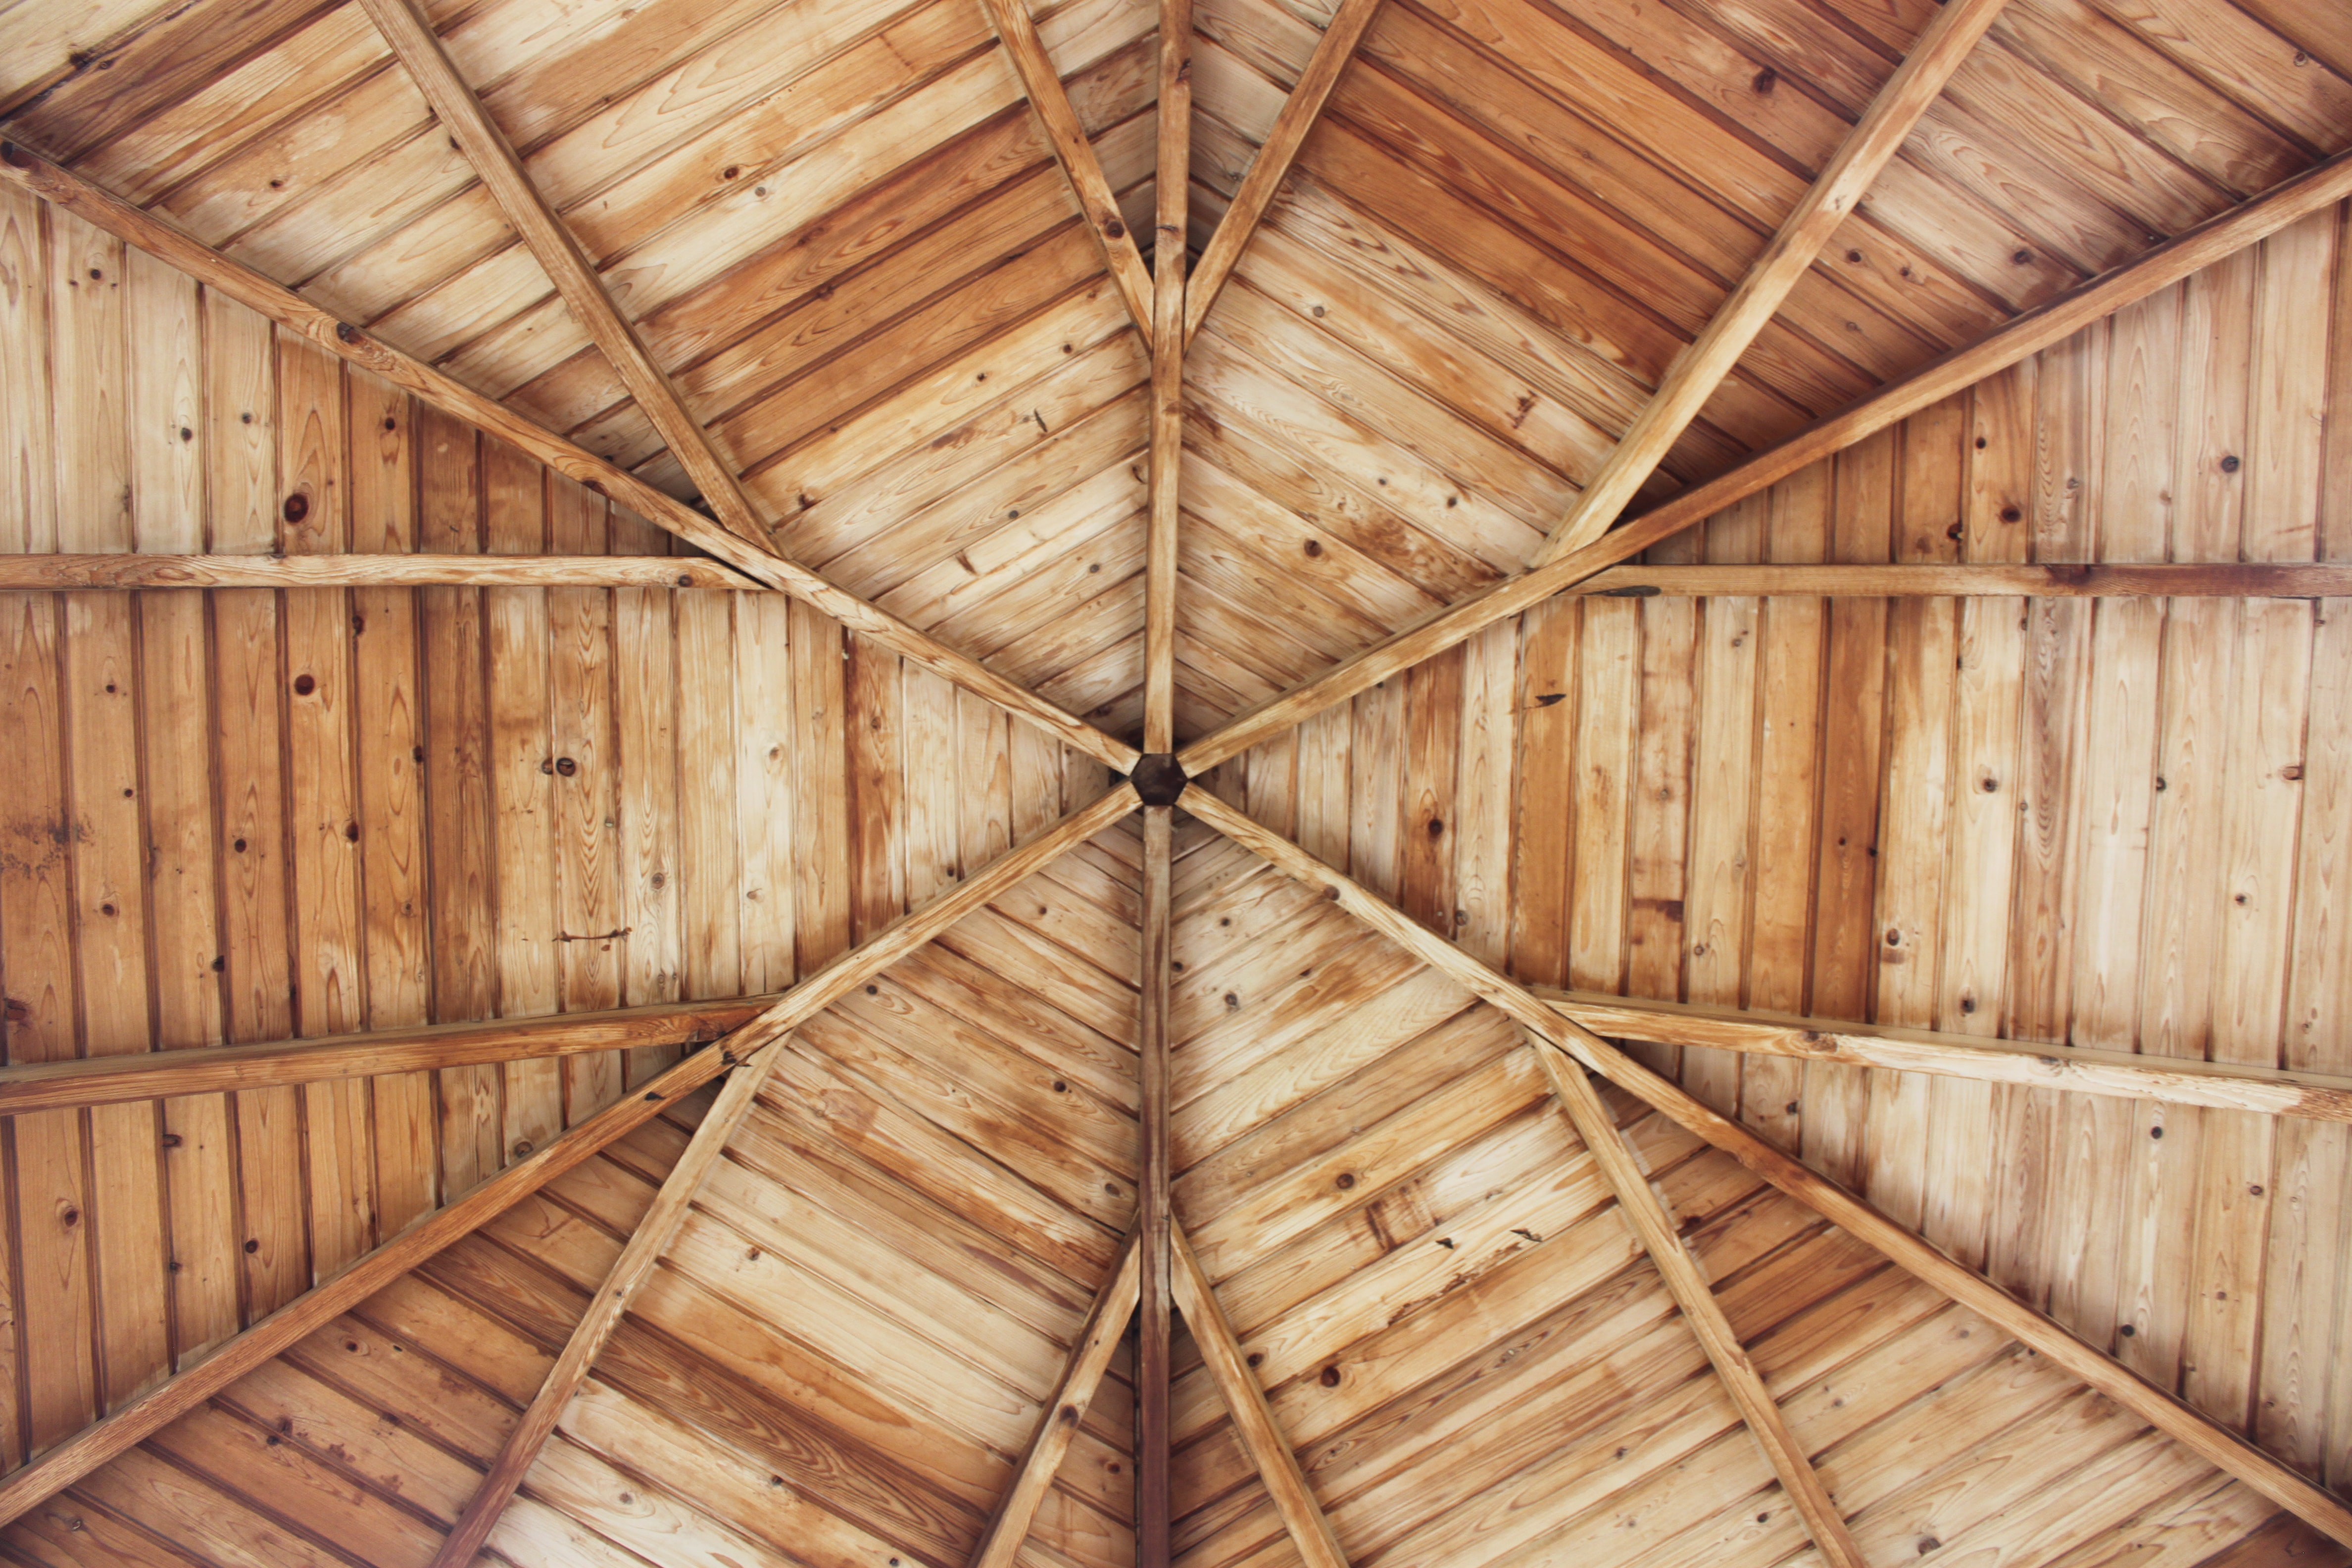 The symmetrical details of a wooden structure's ceiling.